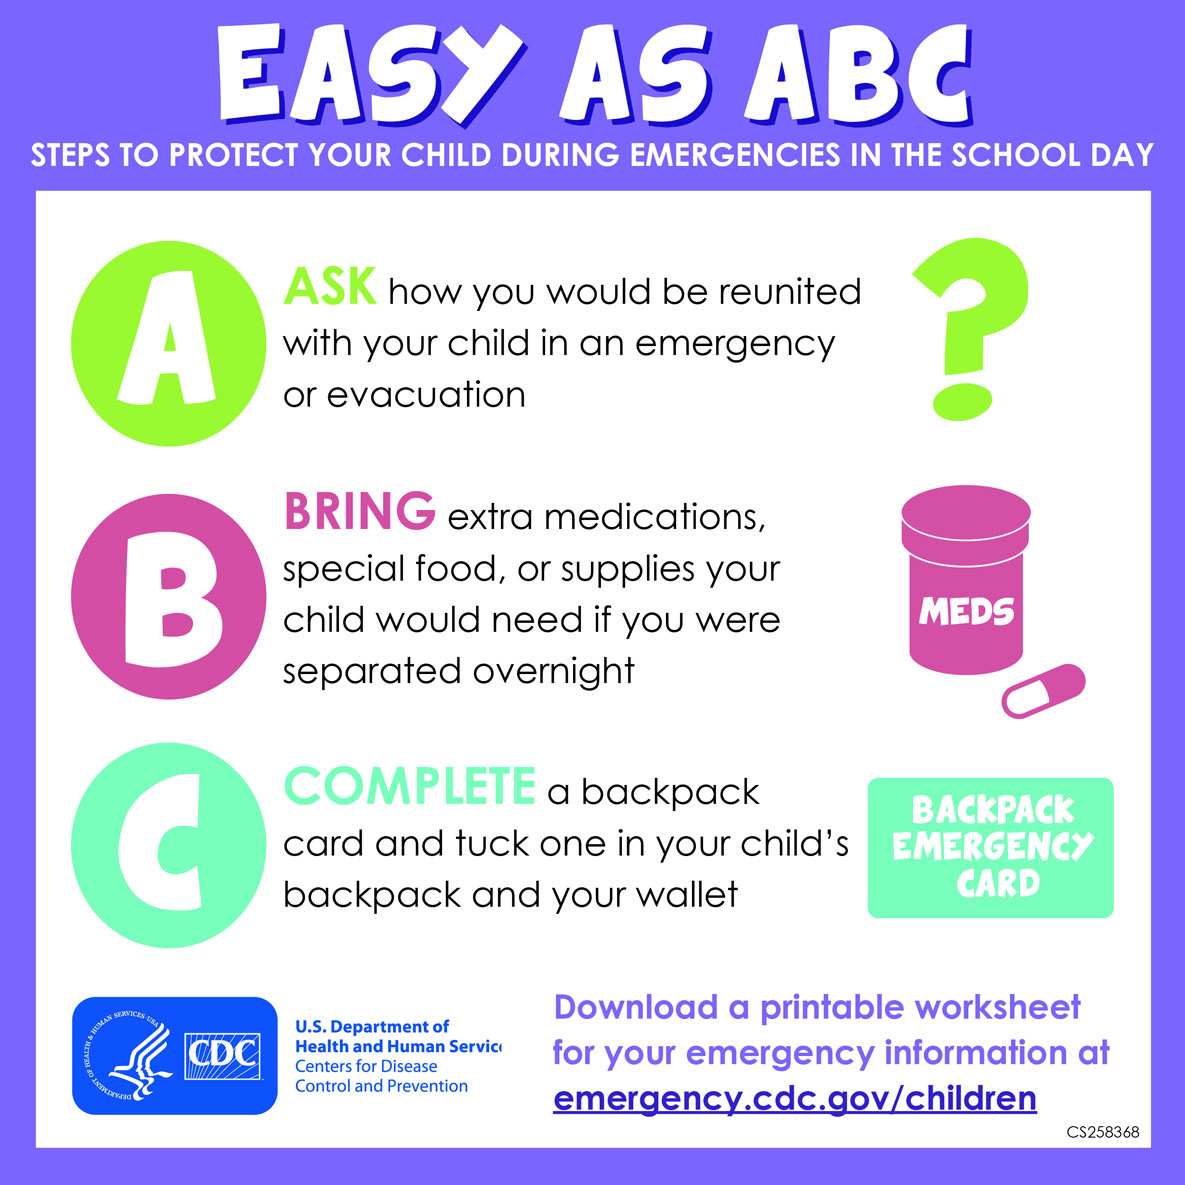 Easy as ABC Infographic